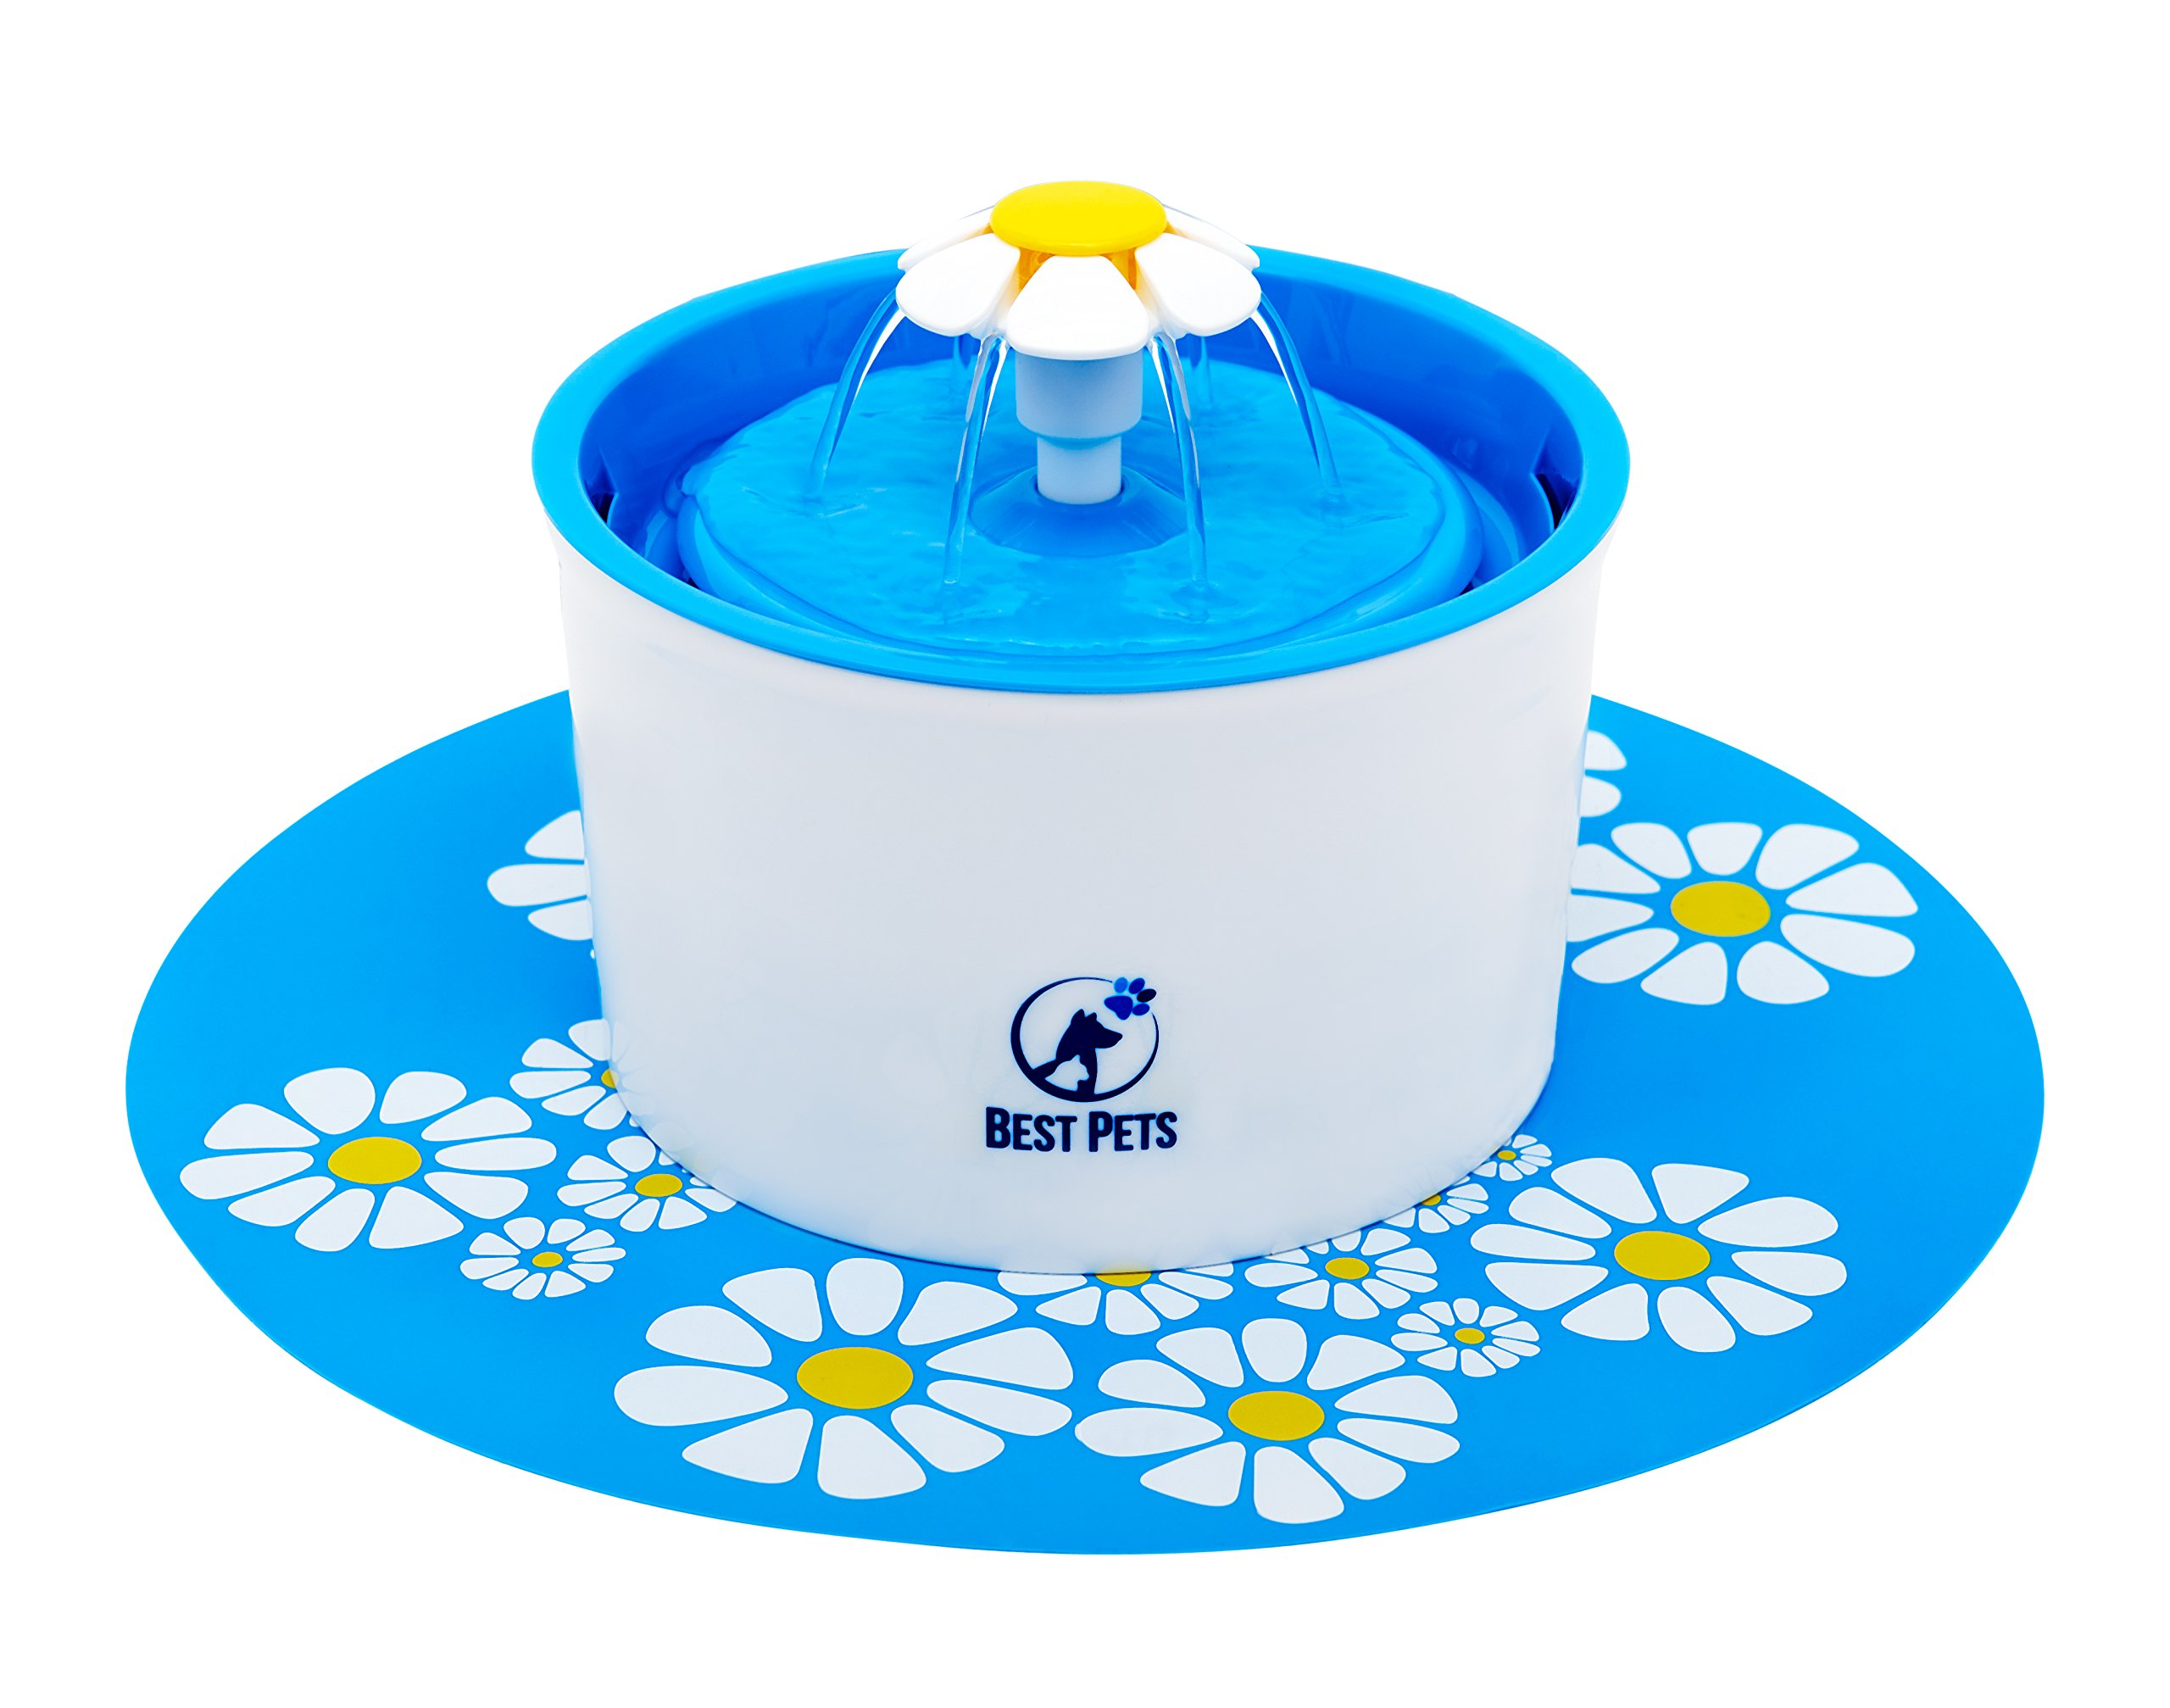 Best Pets Pet water fountain - drinking electric dispenser bowl for cats dogs and birds - 3 water flow drink settings with ultra silent pump - blue flower fountains by Best Pets